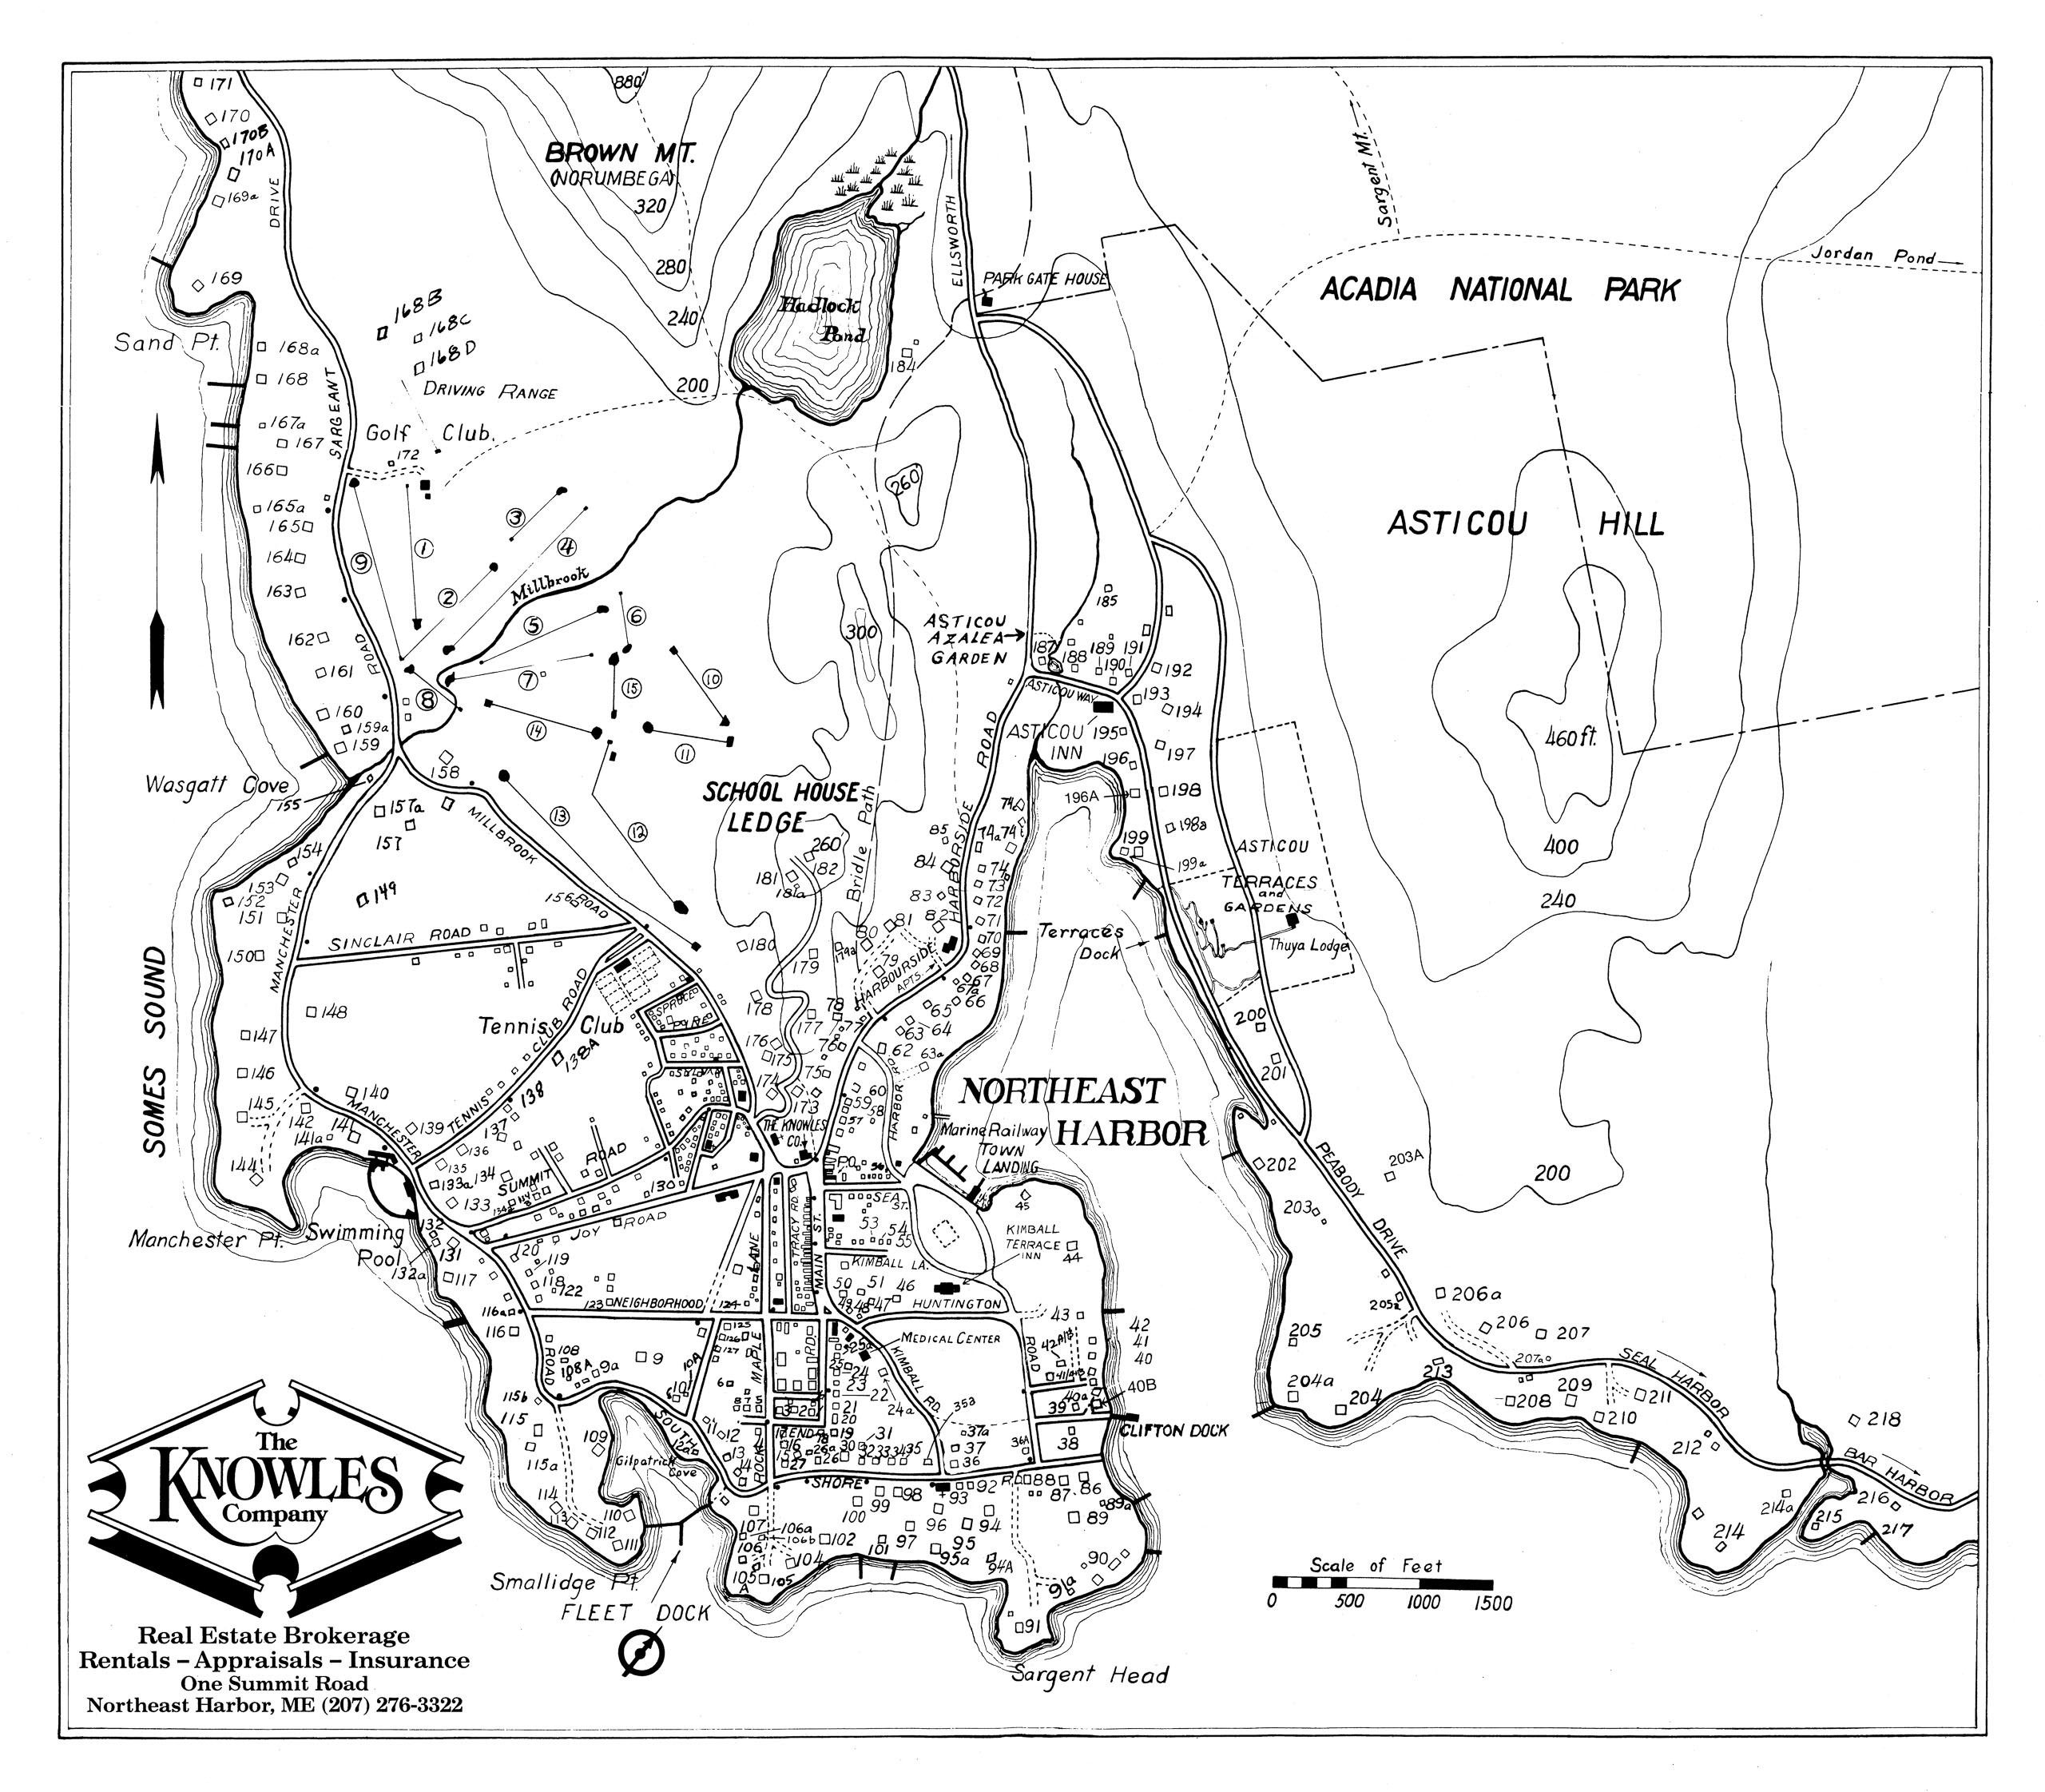 1994 Cottage Directory of Northeast Harbor, Maine